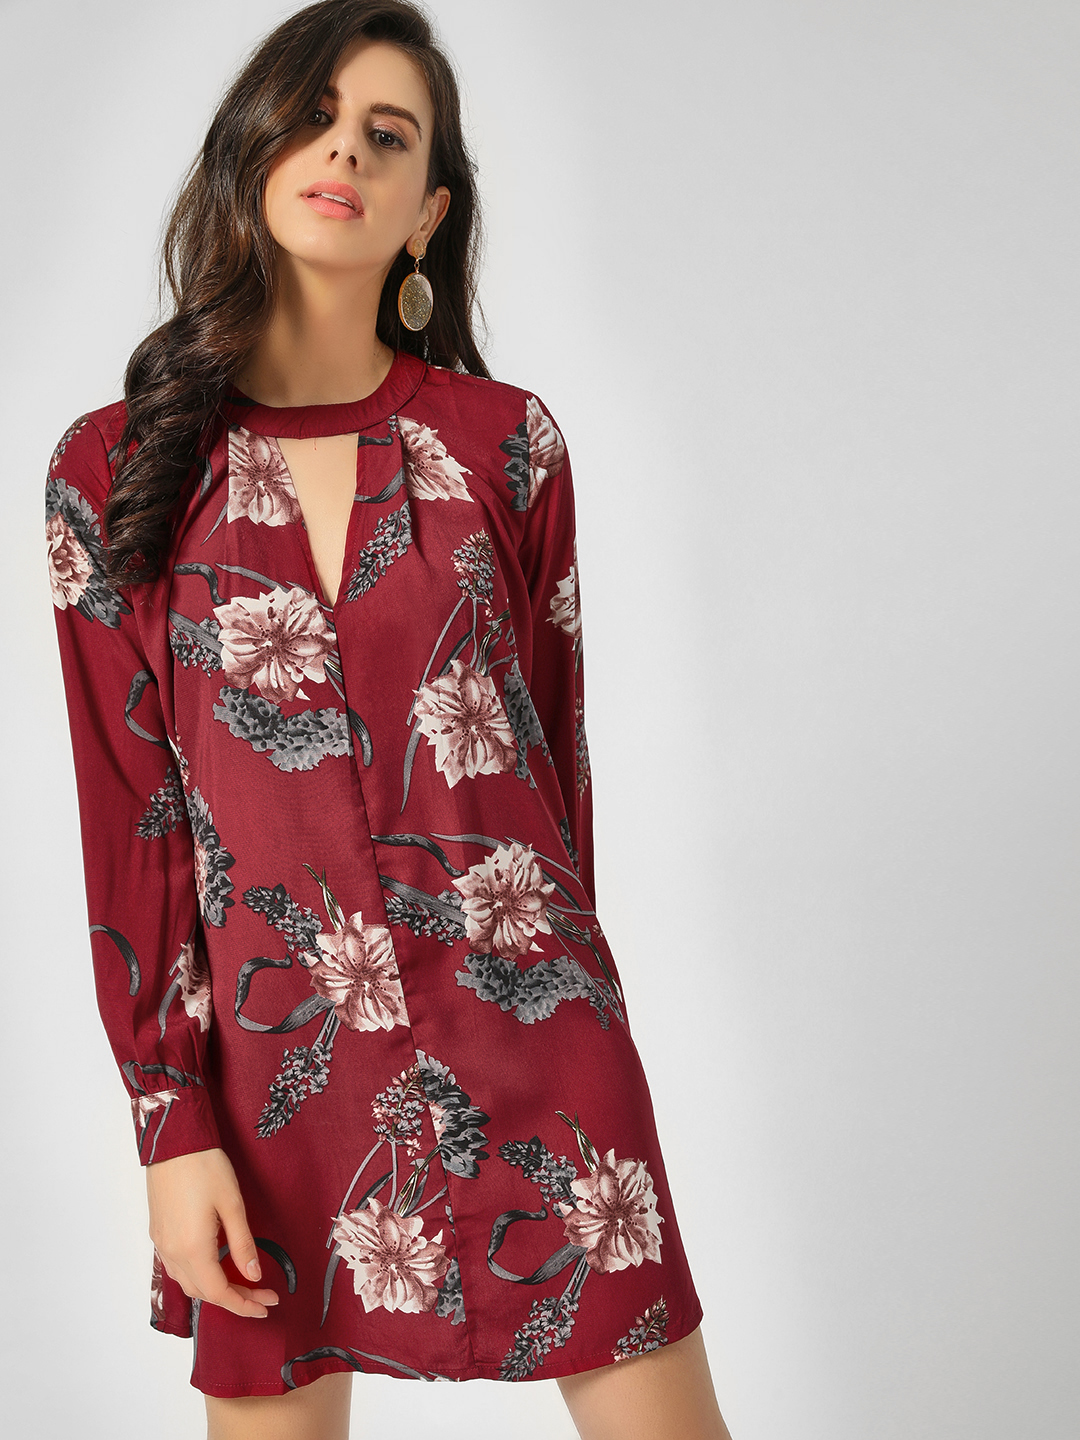 Lola May Wine Full Sleeve Shift Dress 1